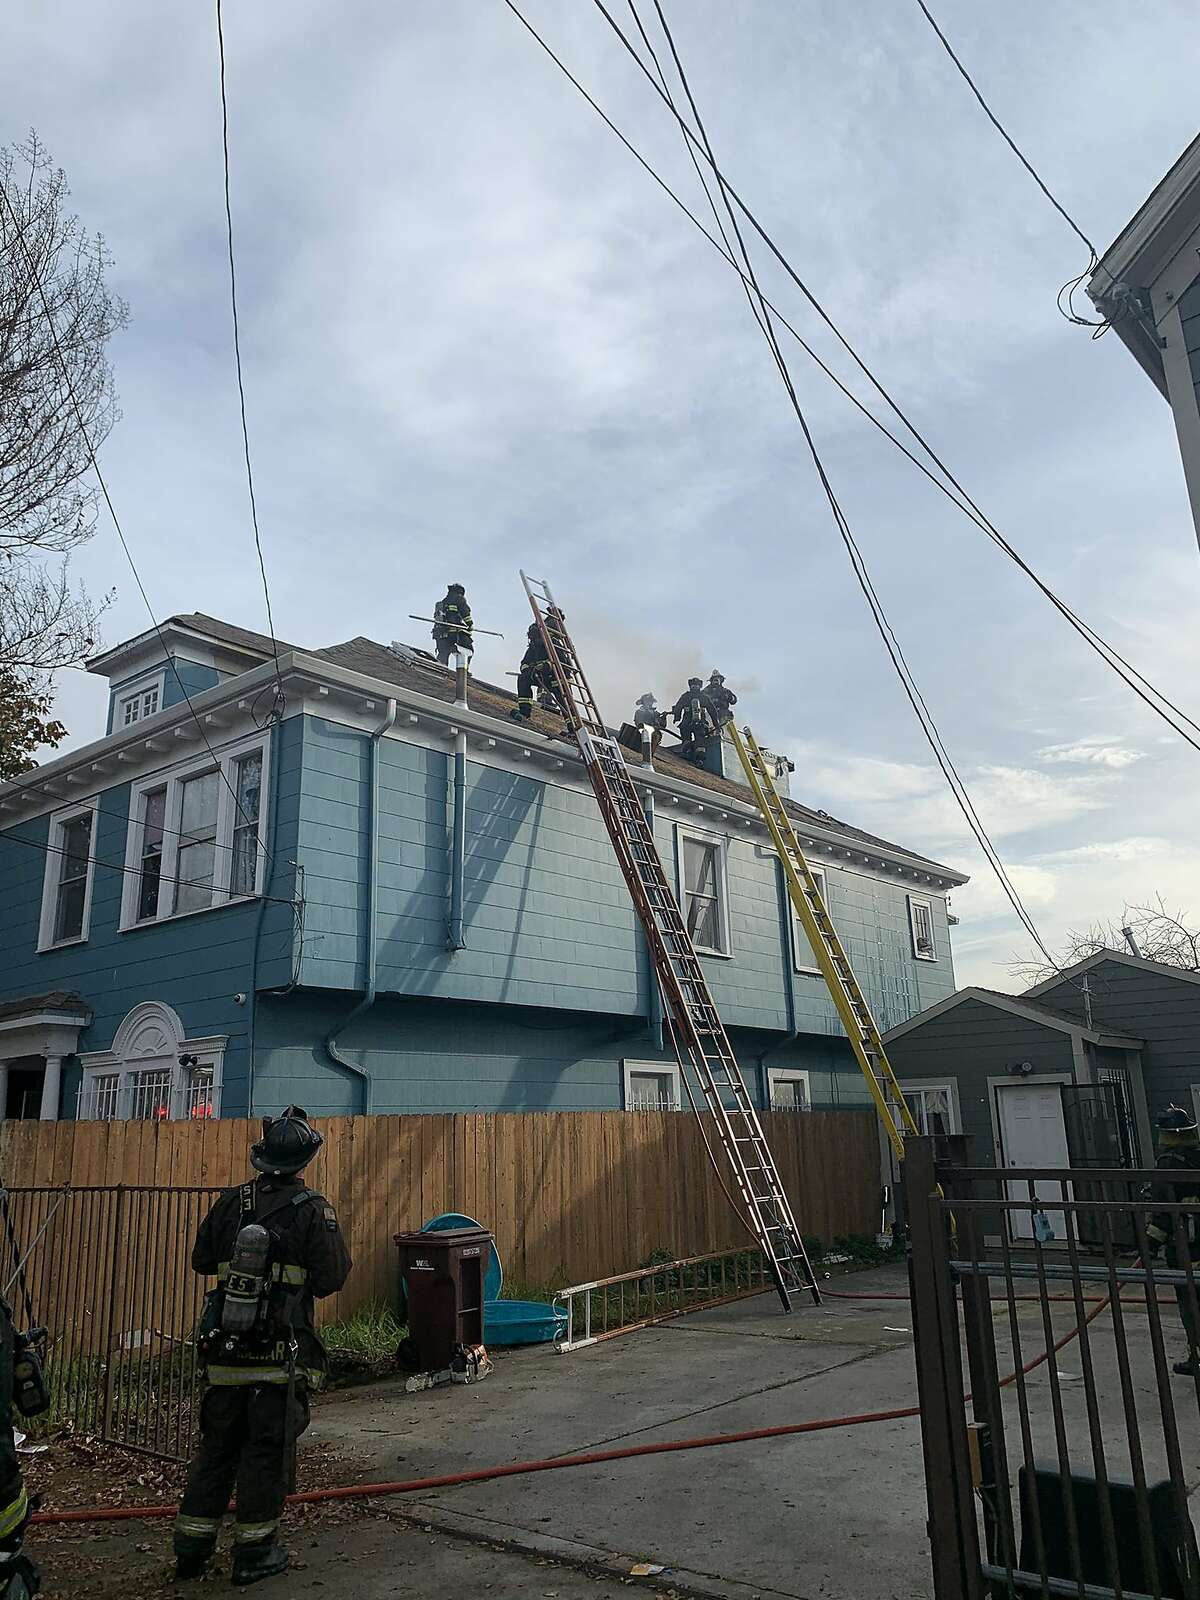 Nine people were displaced from a fire that damaged two residences in Oakland on Wednesday afternoon, Oakland Fire Department officials said. No injuries were reported shortly before 3 p.m Wednesday., but six adults and three children were displaced from the fire, Oakland fire officials said.